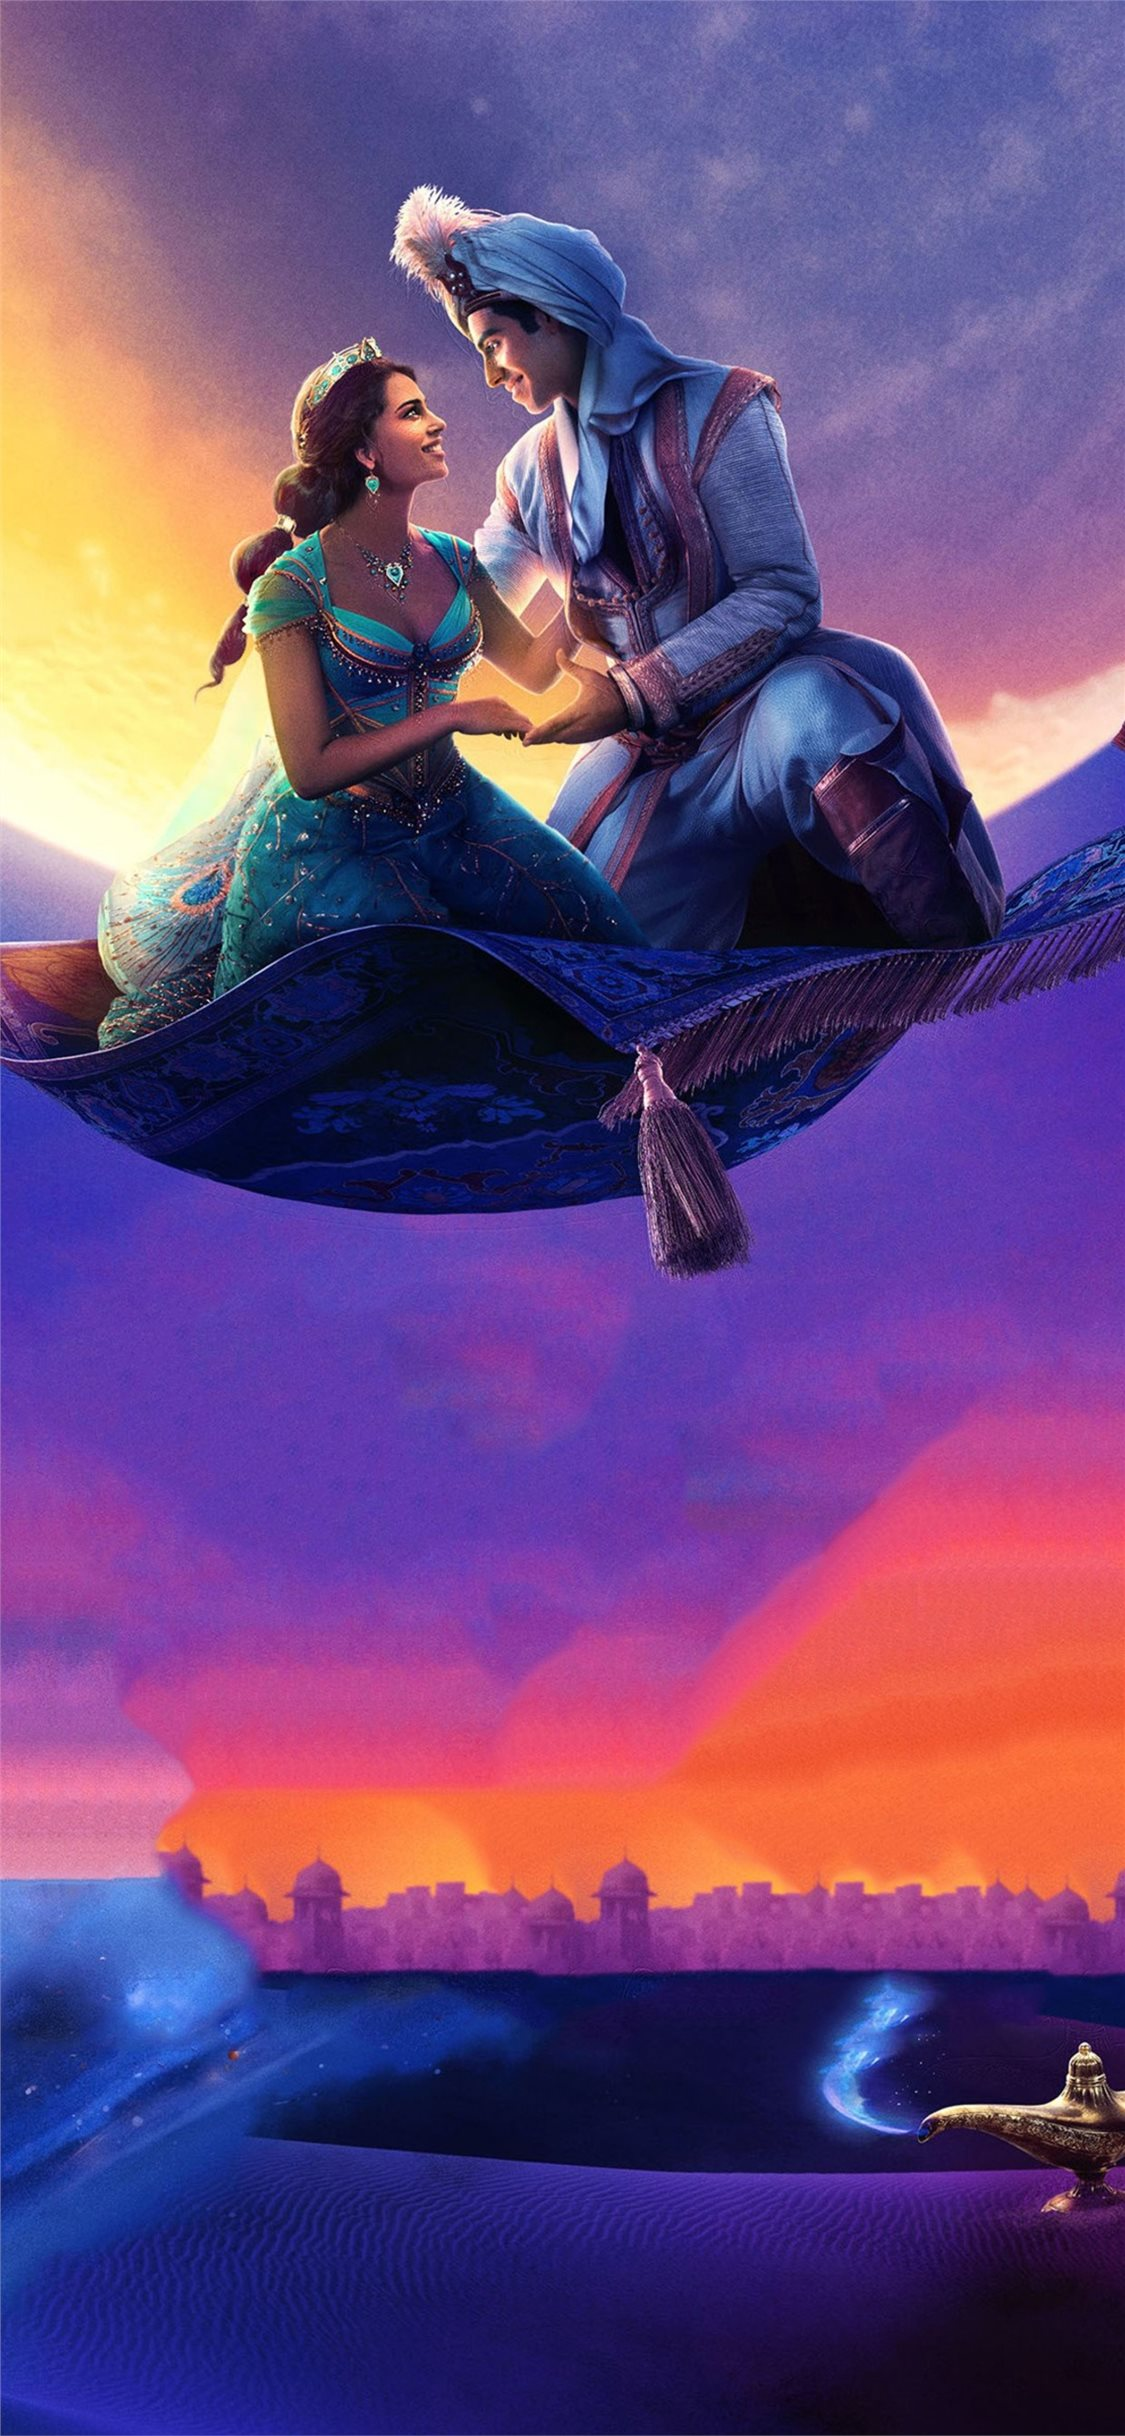 aladdin 2019 4k movie iPhone X Wallpapers Free Download